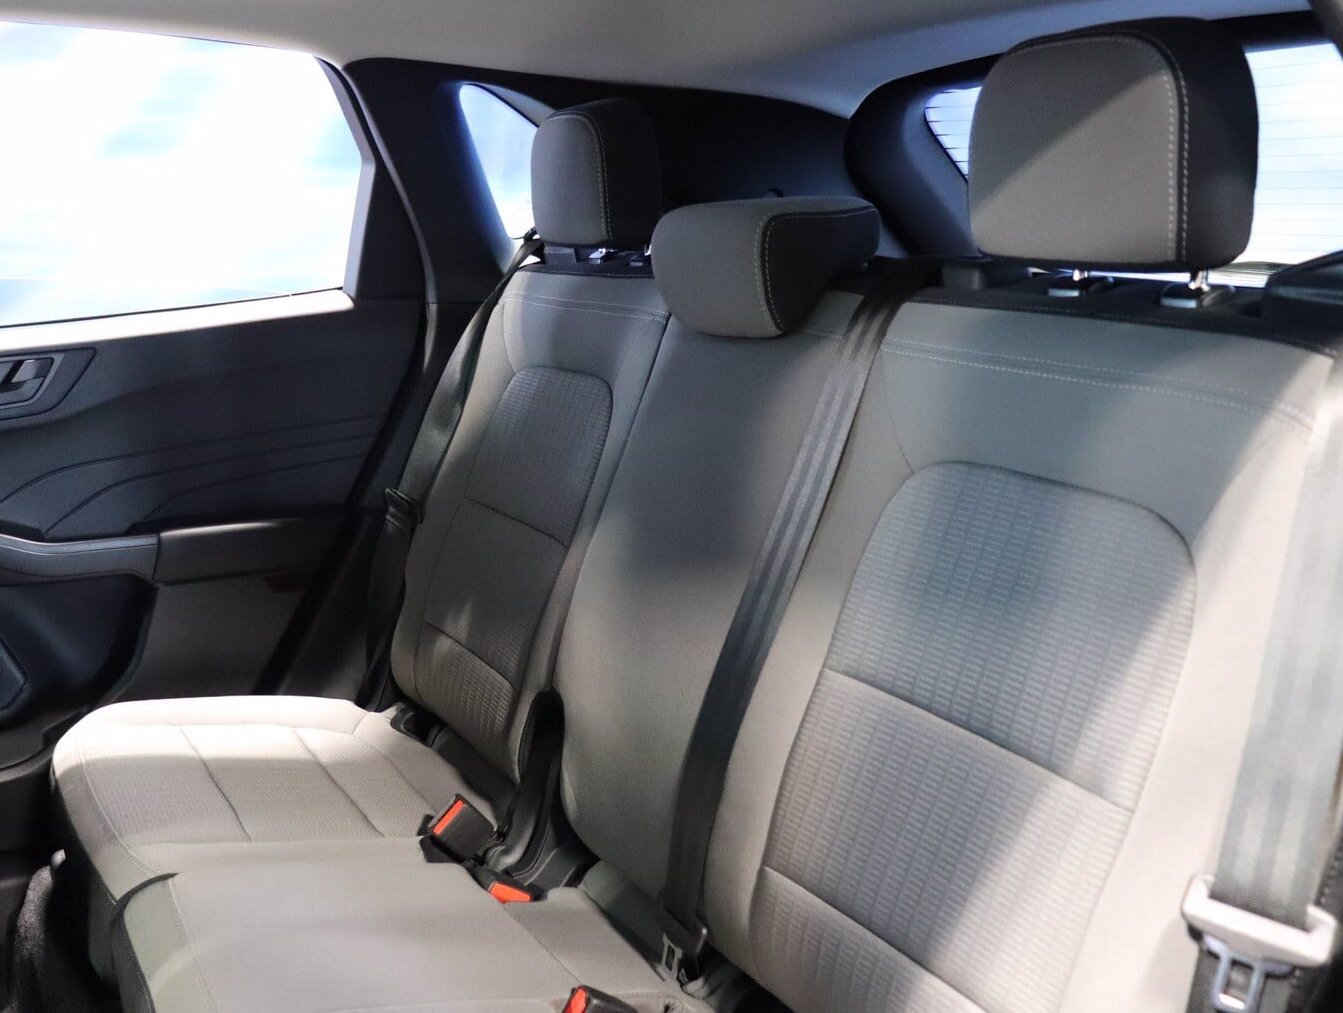 Ford Escape Rear seat covers www.seatcovers.com